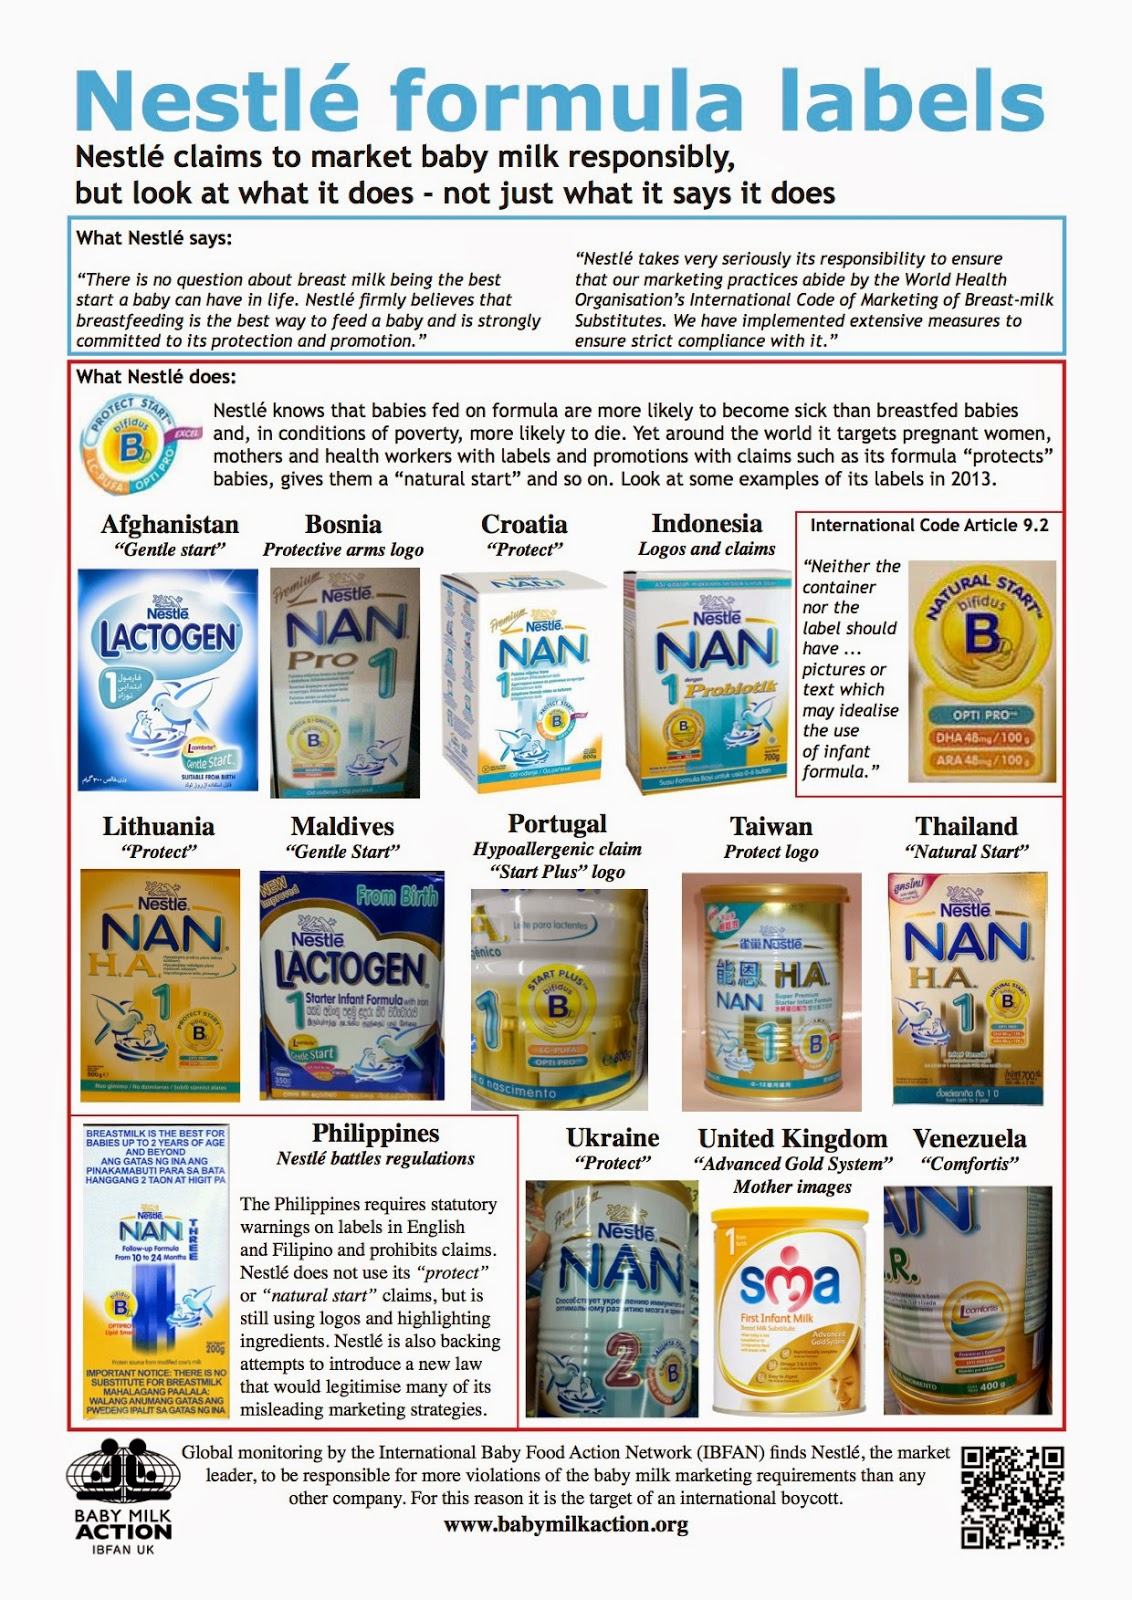 nestle boycotting Nestlé is the target of a boycott because it contributes to the unnecessary death and suffering of infants around the world by aggressively marketing baby foods in breach of international marketing standardseven nestlé's public affairs manager acknowledges the boycott has widespread support according to the world health organisation, 15 million infants die around the world every year.